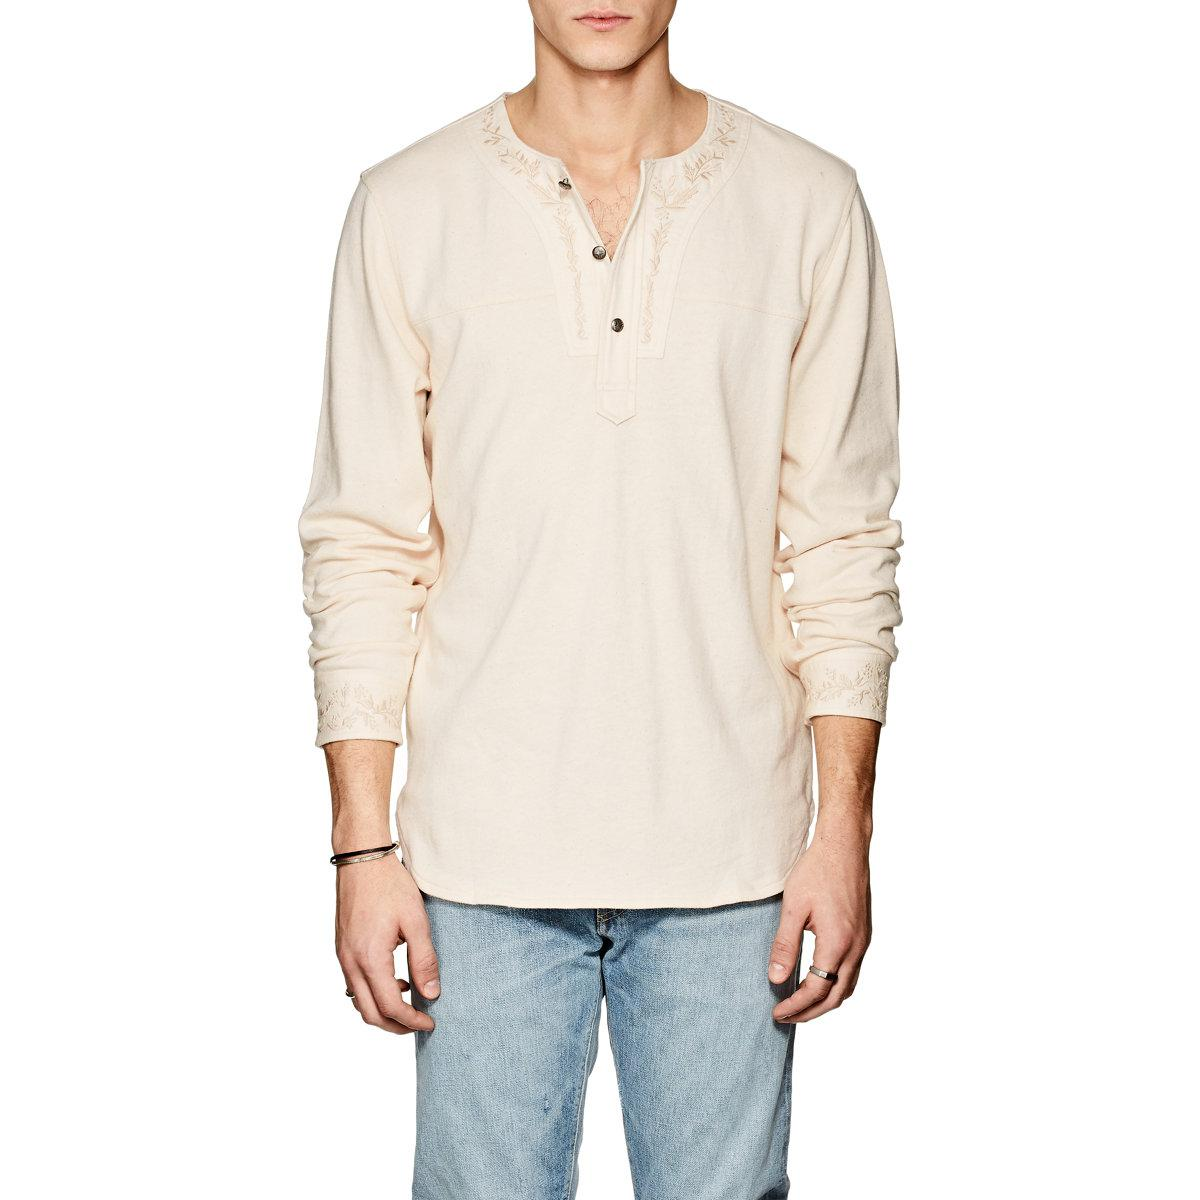 91239c76 Lyst - Rrl Embroidered Cotton Henley in Natural for Men